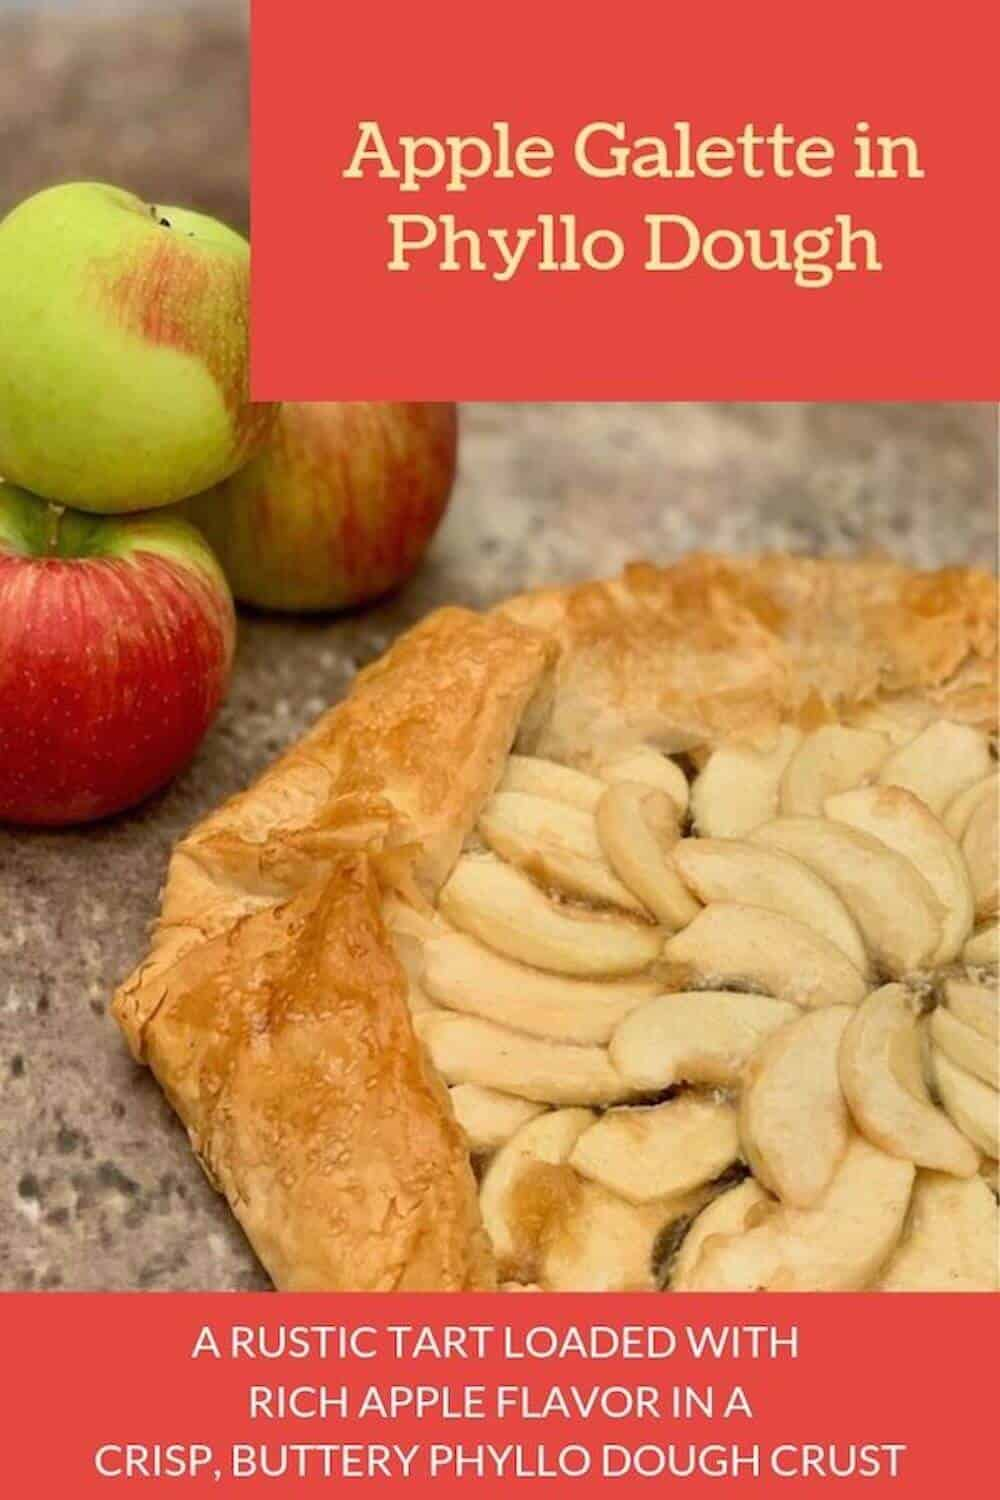 apple galette in phyllo dough closeup Pinterest banner